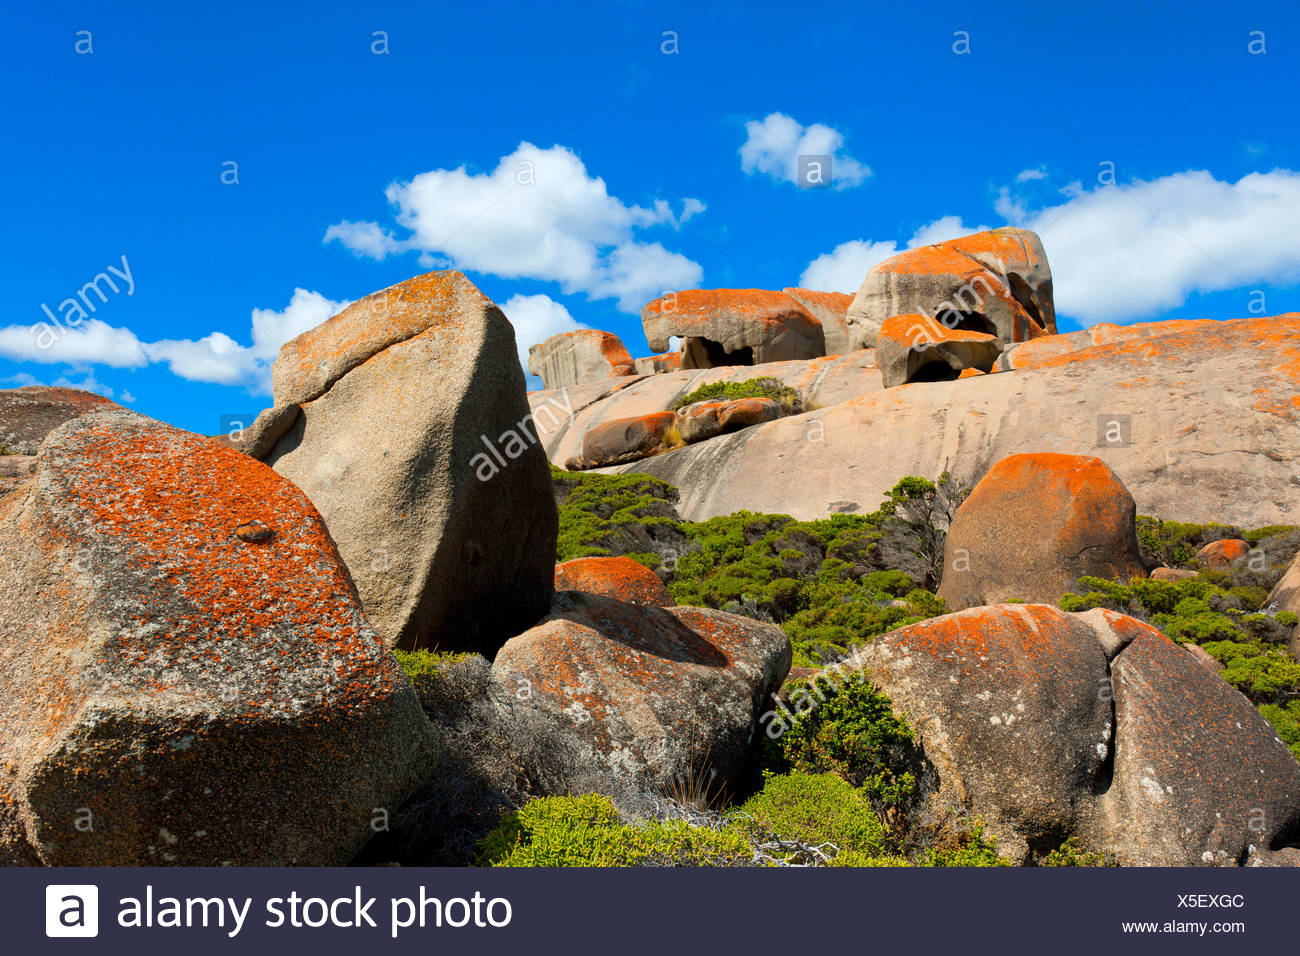 Remarkable rock, Australia, south Australia, Kangaroo Island, Flinders Chase, national park, rock, cliff, lichens - Stock Image